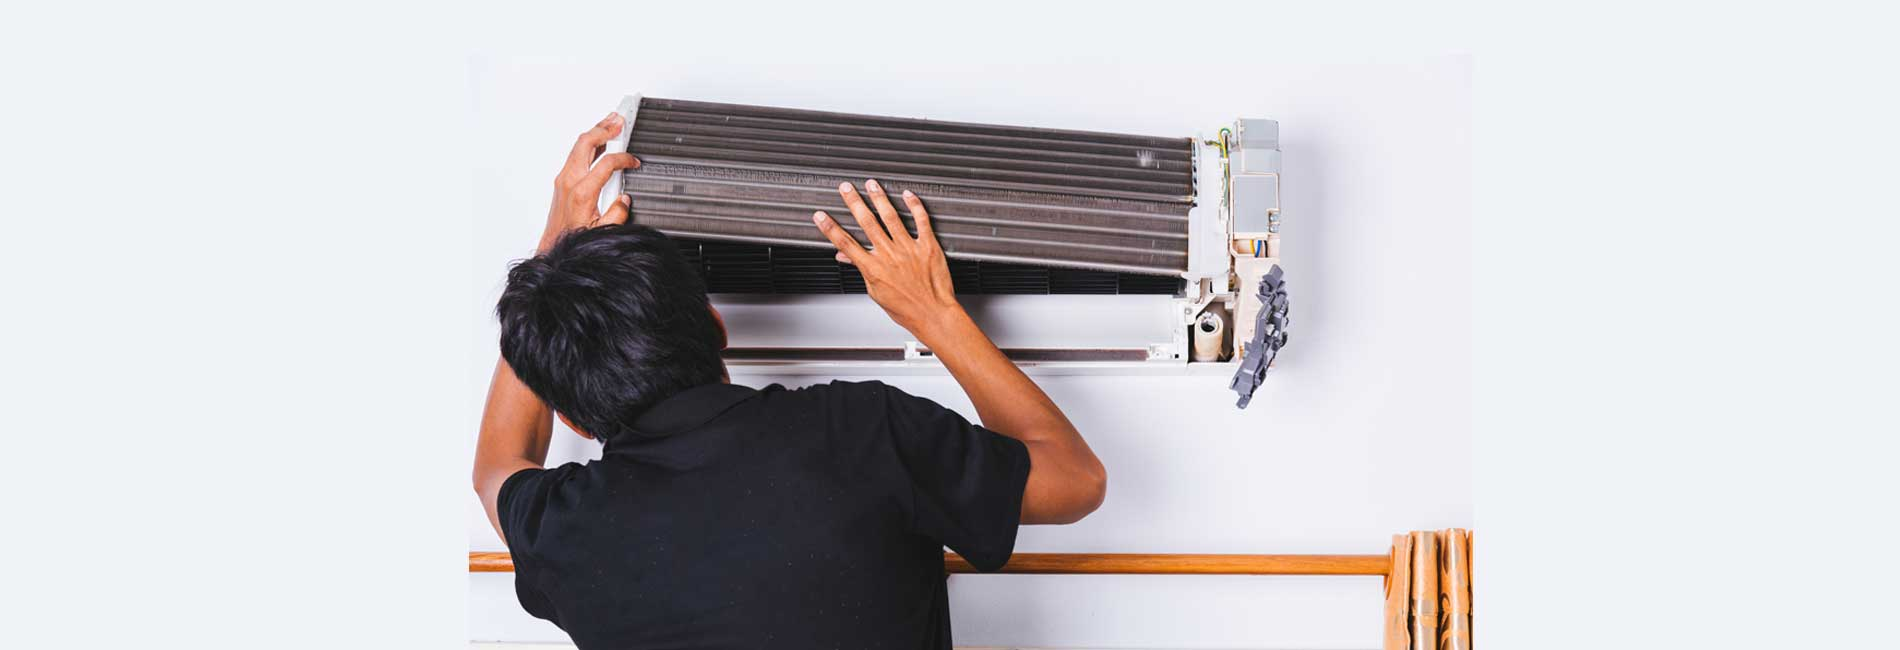 AC Uninstallation Charges in Thoraipakkam